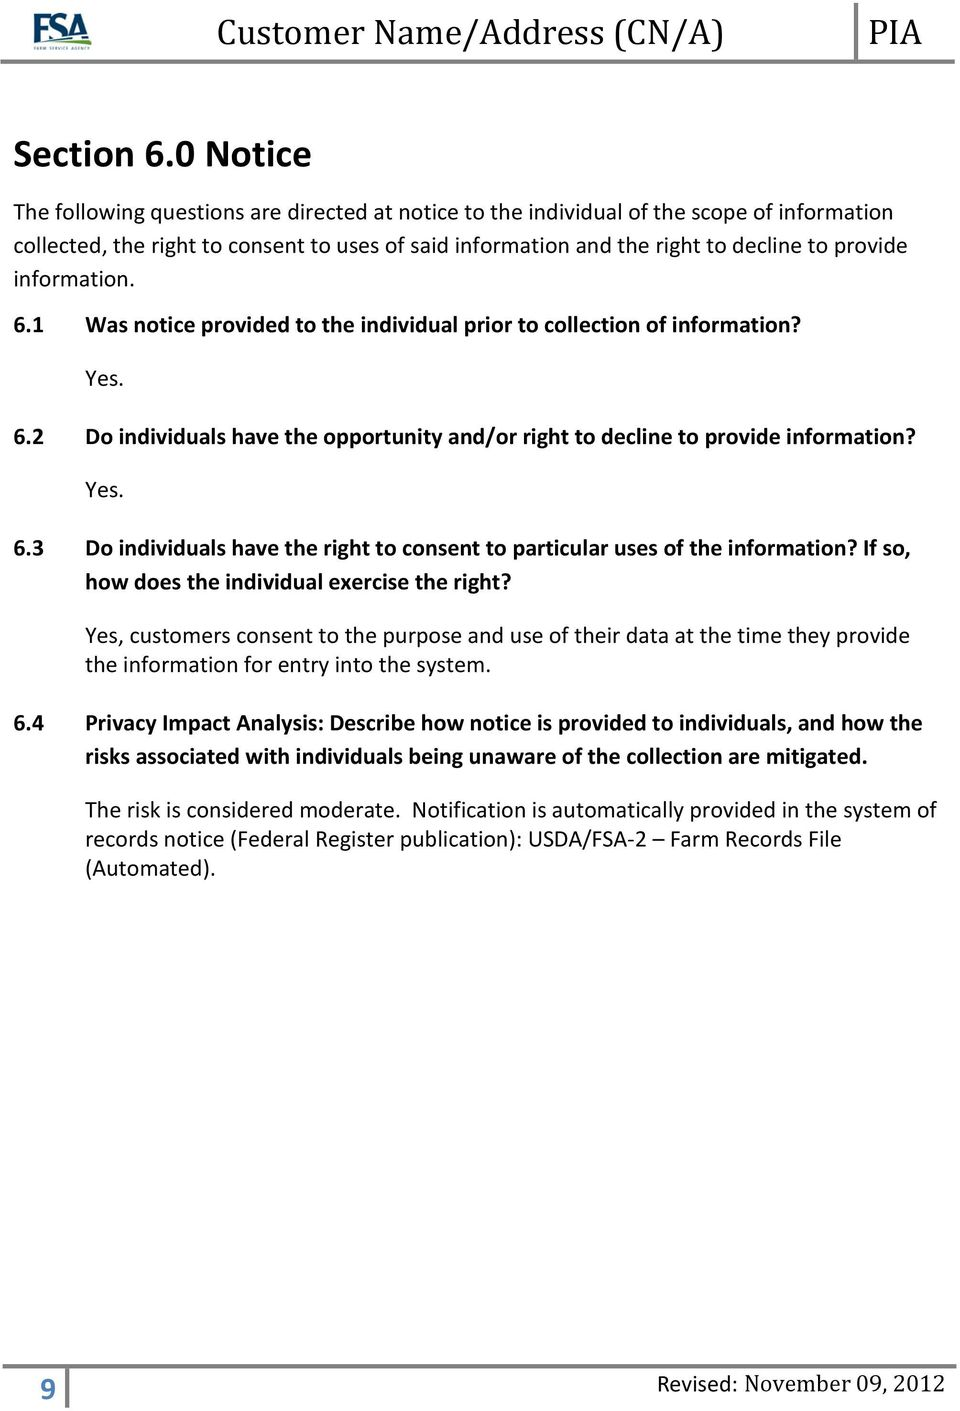 information. 6.1 Was notice provided to the individual prior to collection of information? Yes. 6.2 Do individuals have the opportunity and/or right to decline to provide information? Yes. 6.3 Do individuals have the right to consent to particular uses of the information?